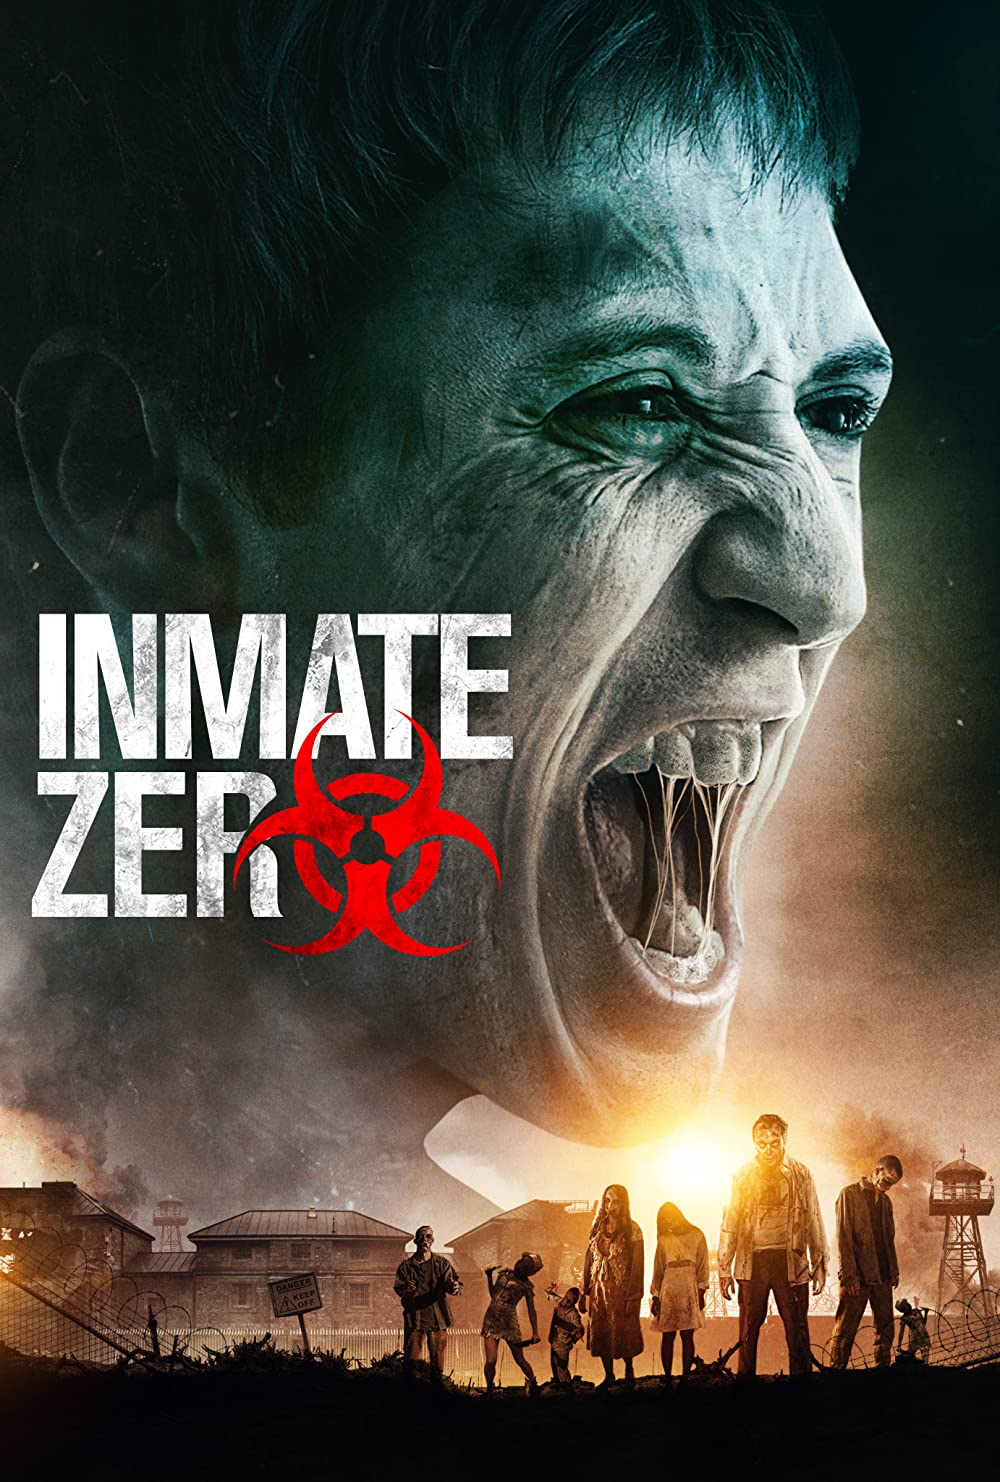 Inmate Zero 2019 Hindi Dual Audio 1080p HDRip ESubs 2GB